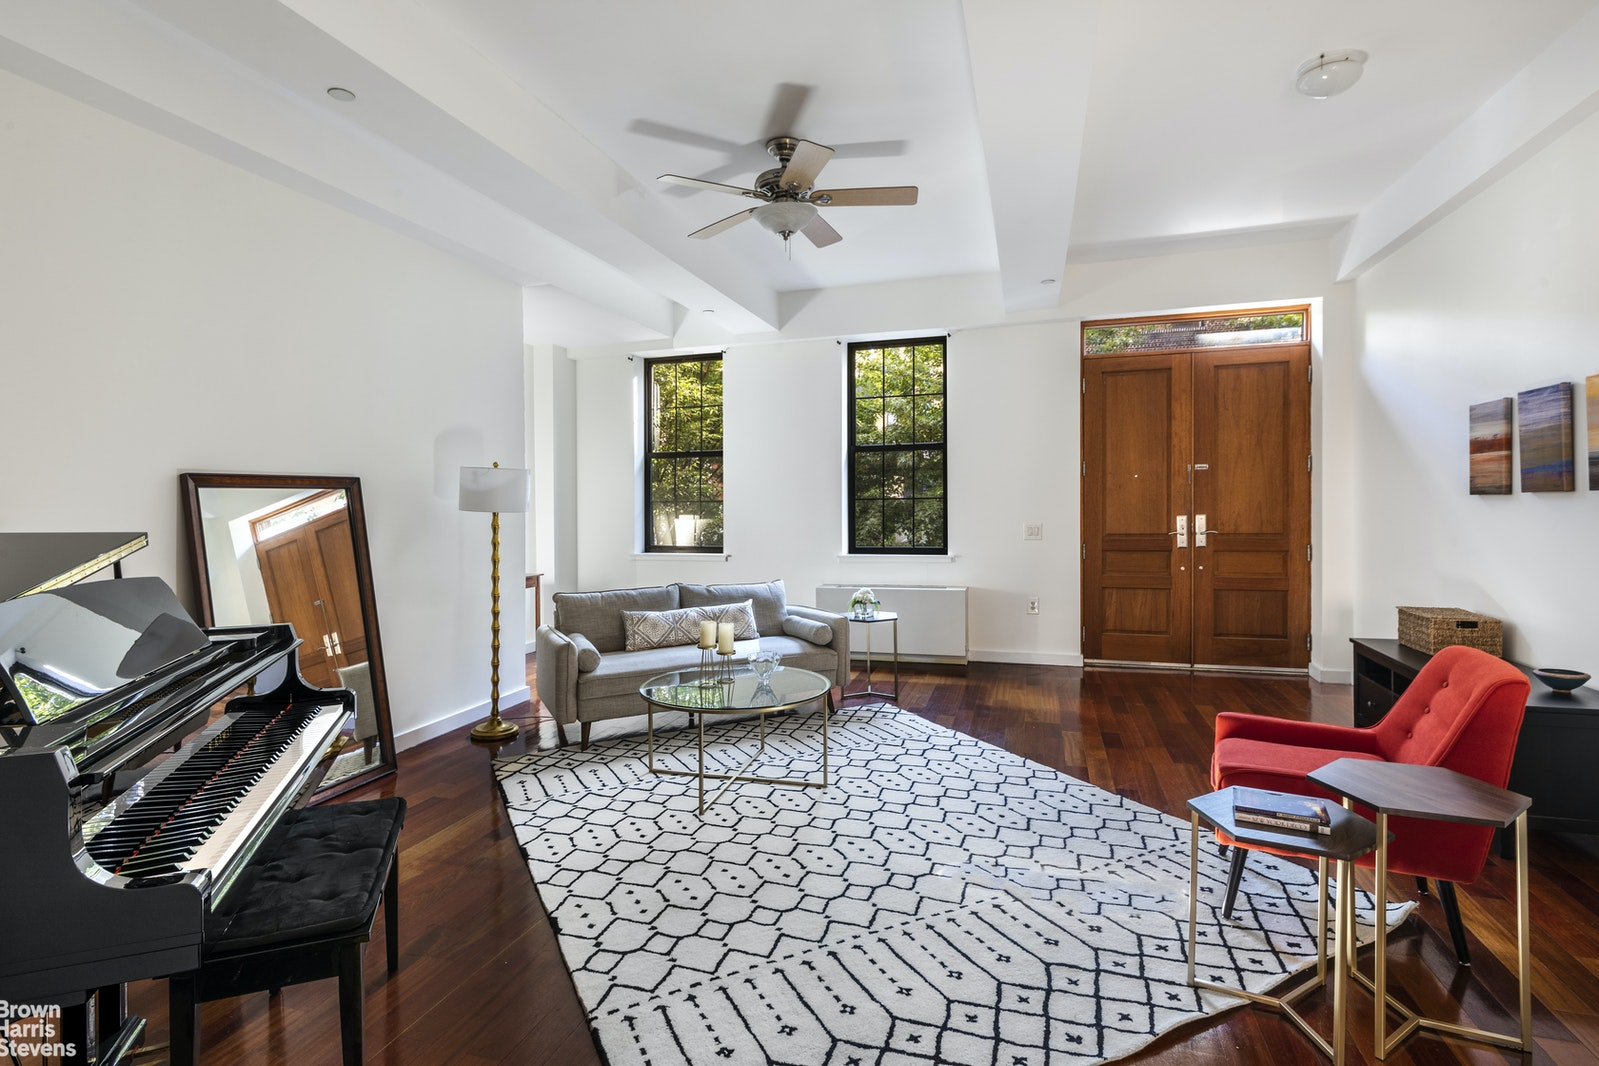 Apartment for sale at 319 West 118th Street, Apt 1B